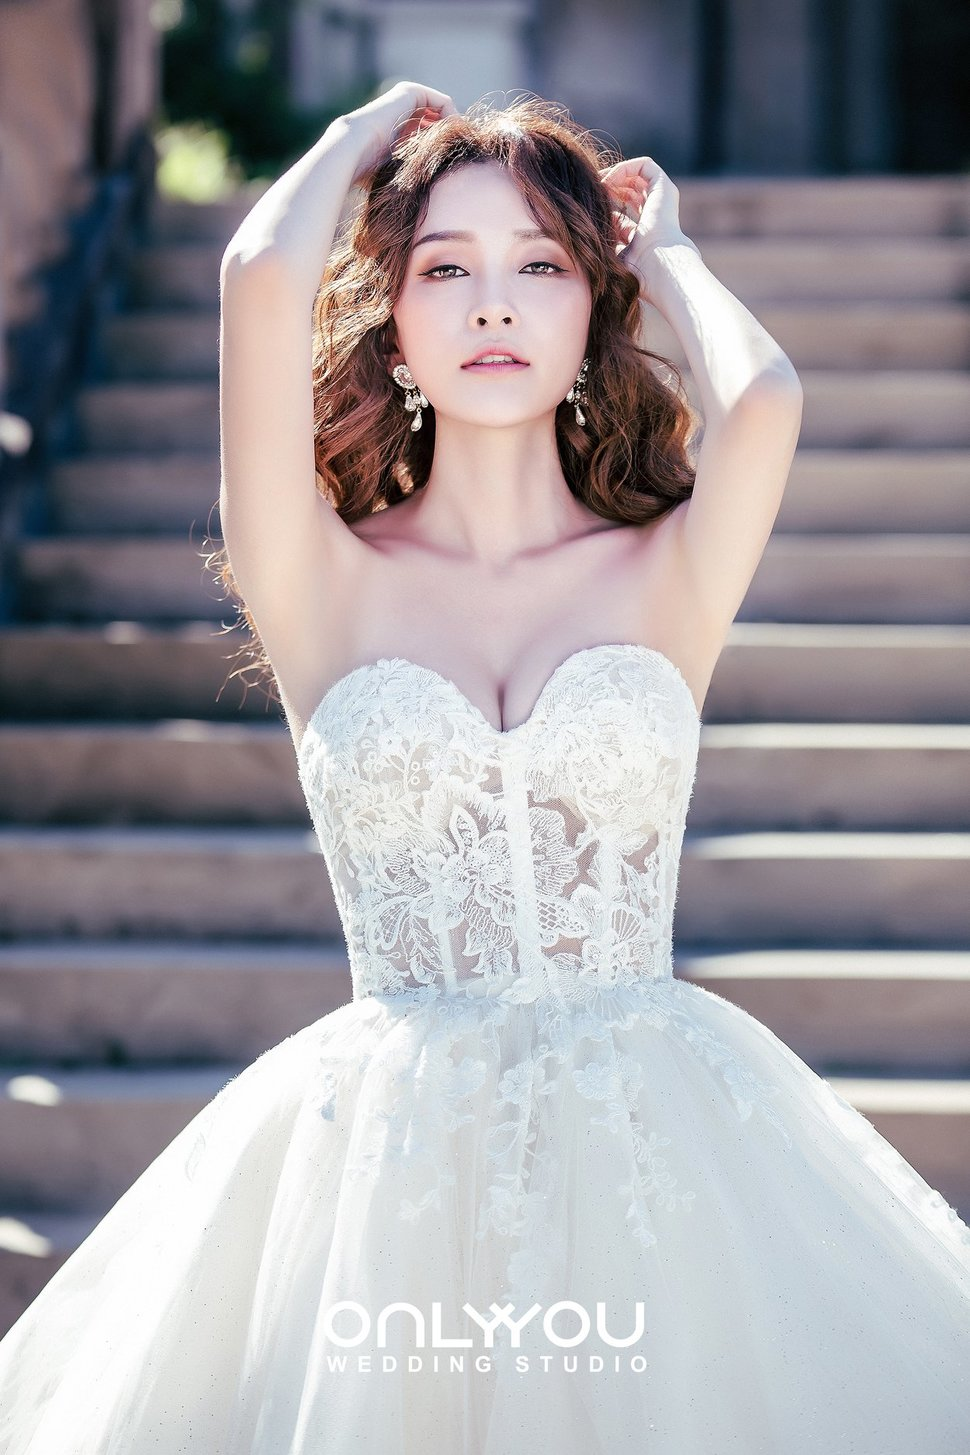 69427110_2340385436017089_7829179159552196608_o - ONLY YOU 唯你婚紗攝影《結婚吧》